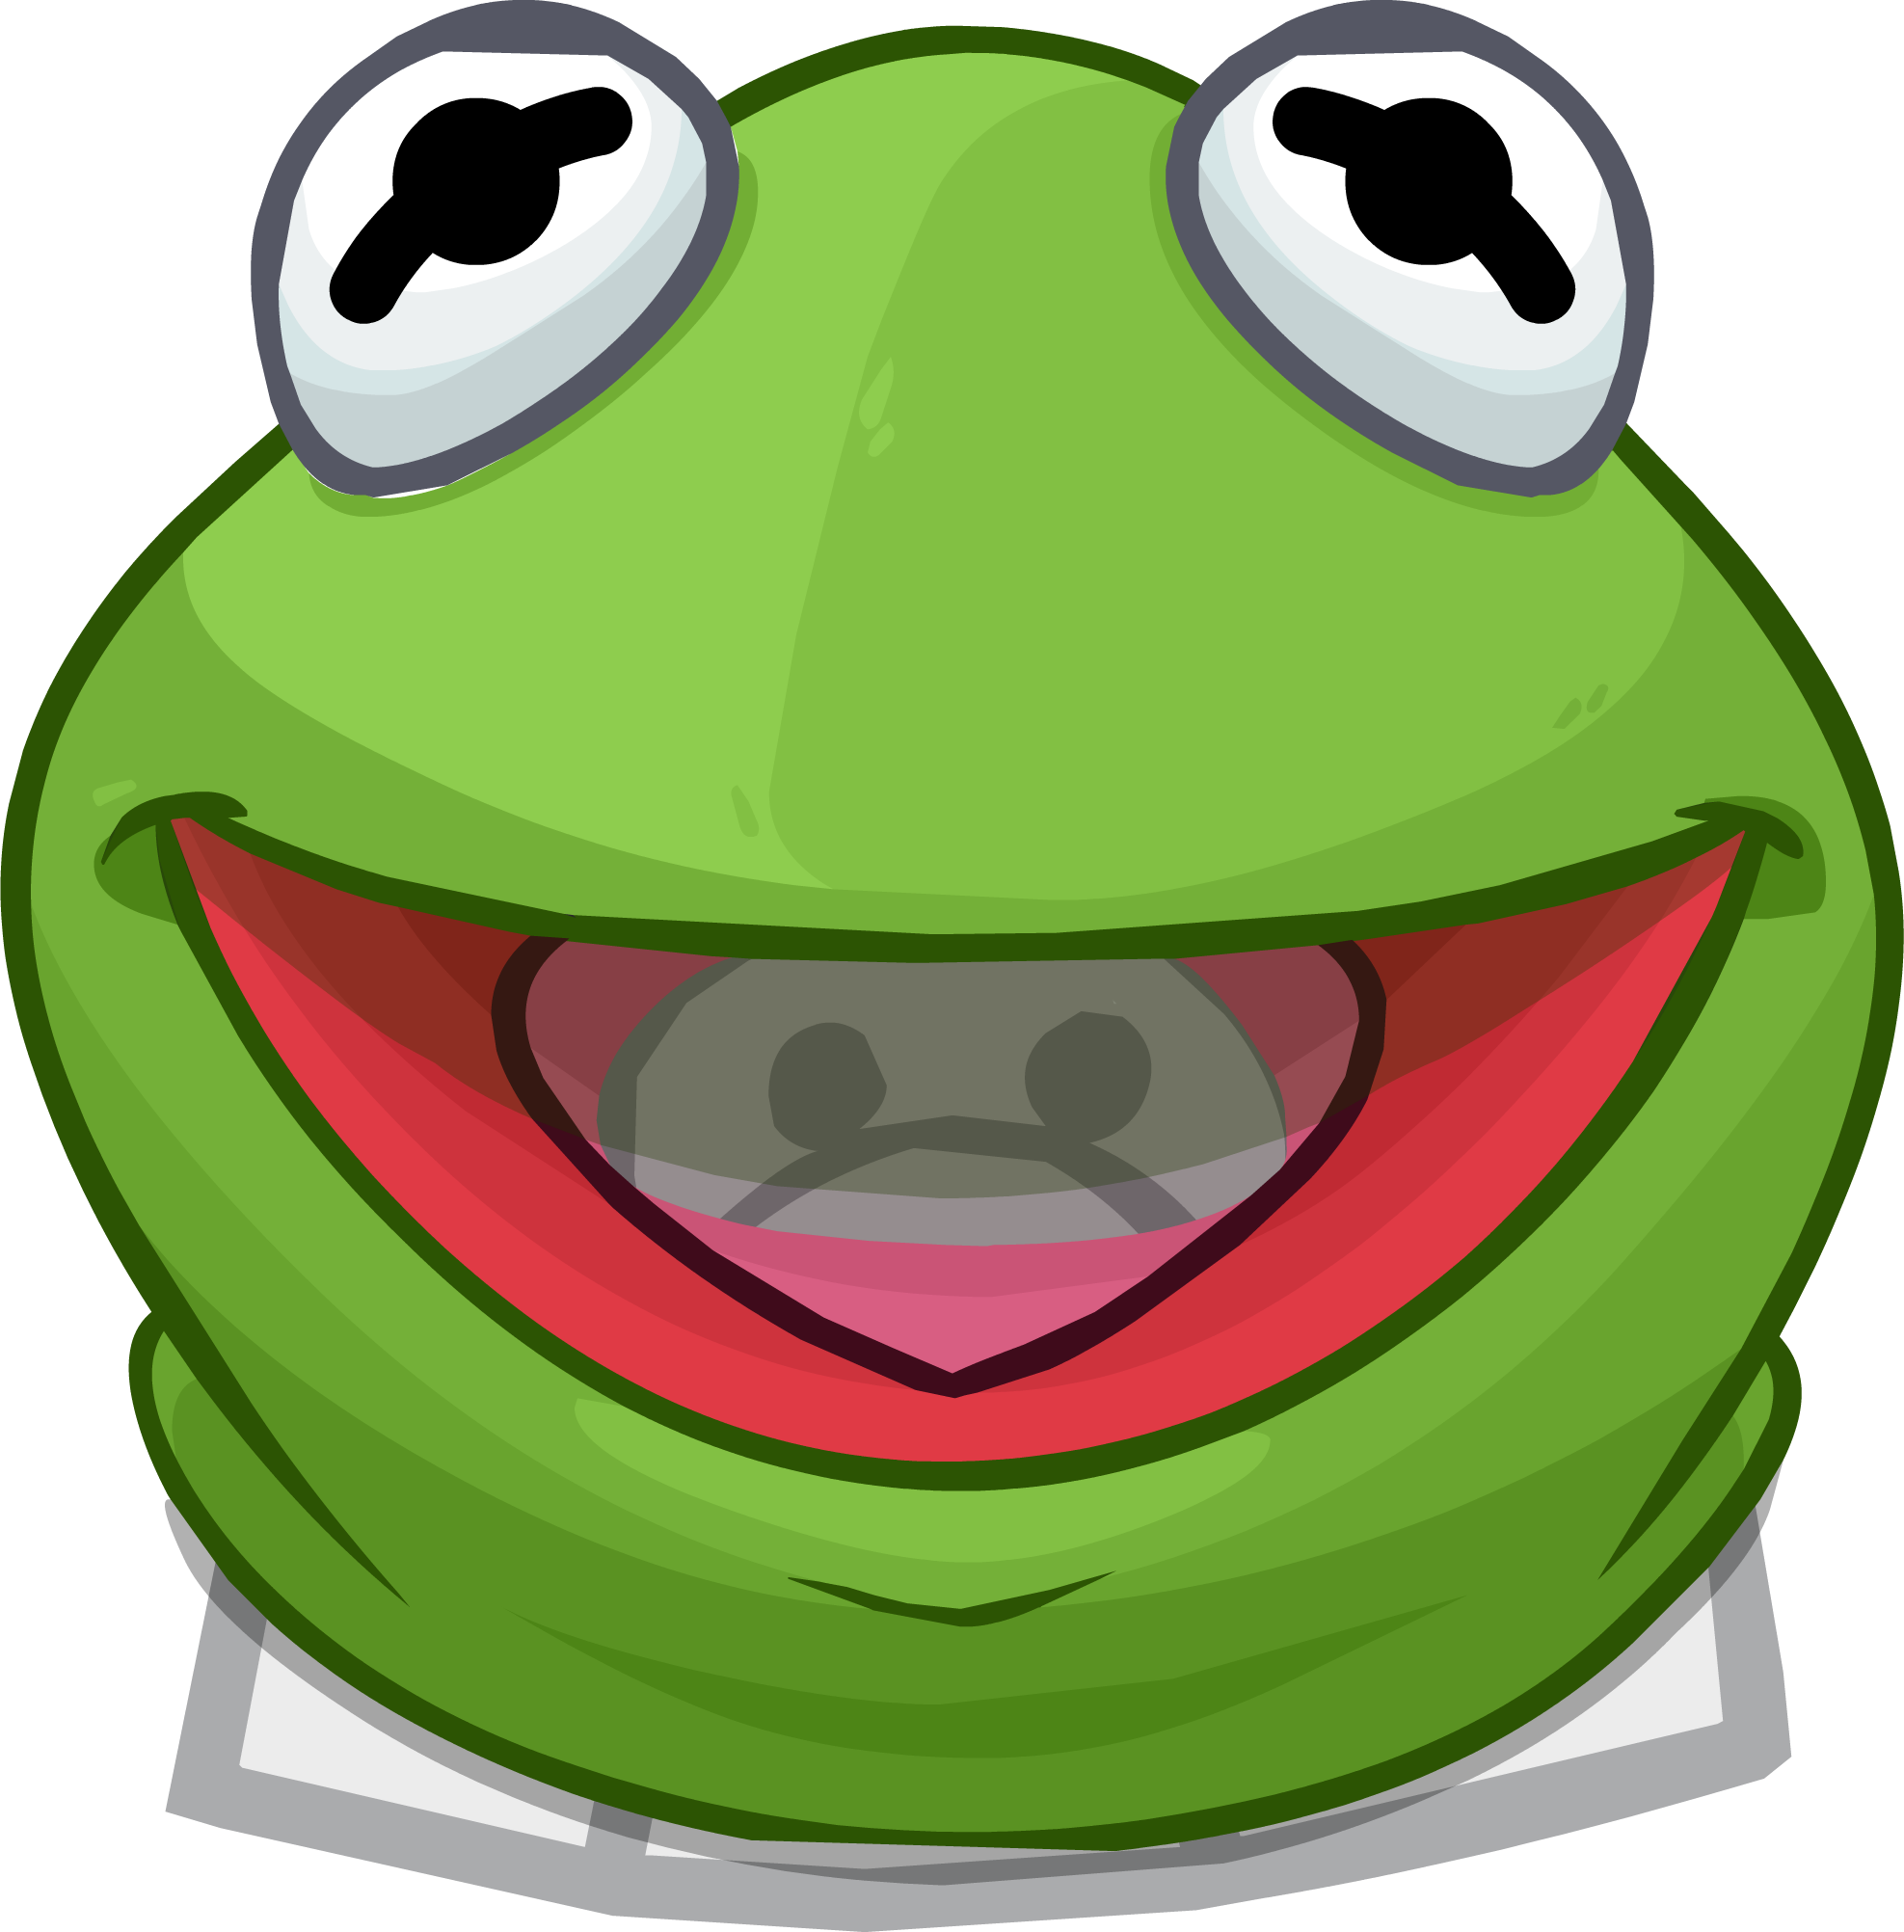 Image Kermit The Frog Head Clothing Icon Club Penguin Wiki Fandom Powered Wikia